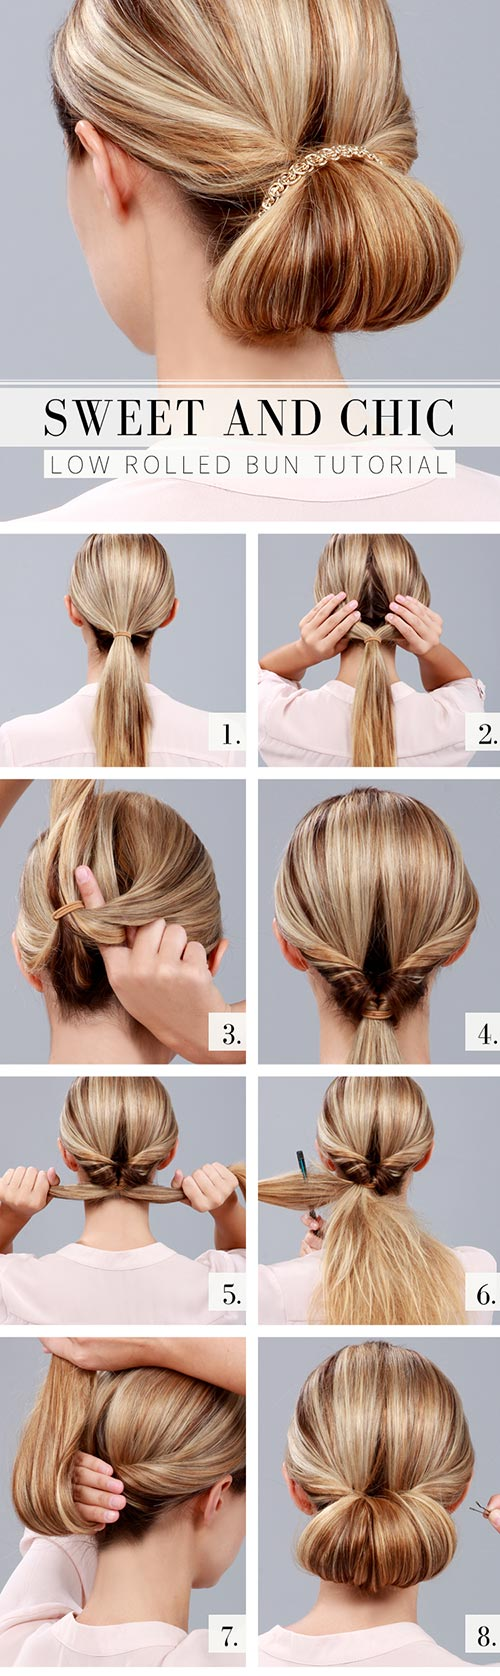 Low twisted bun over